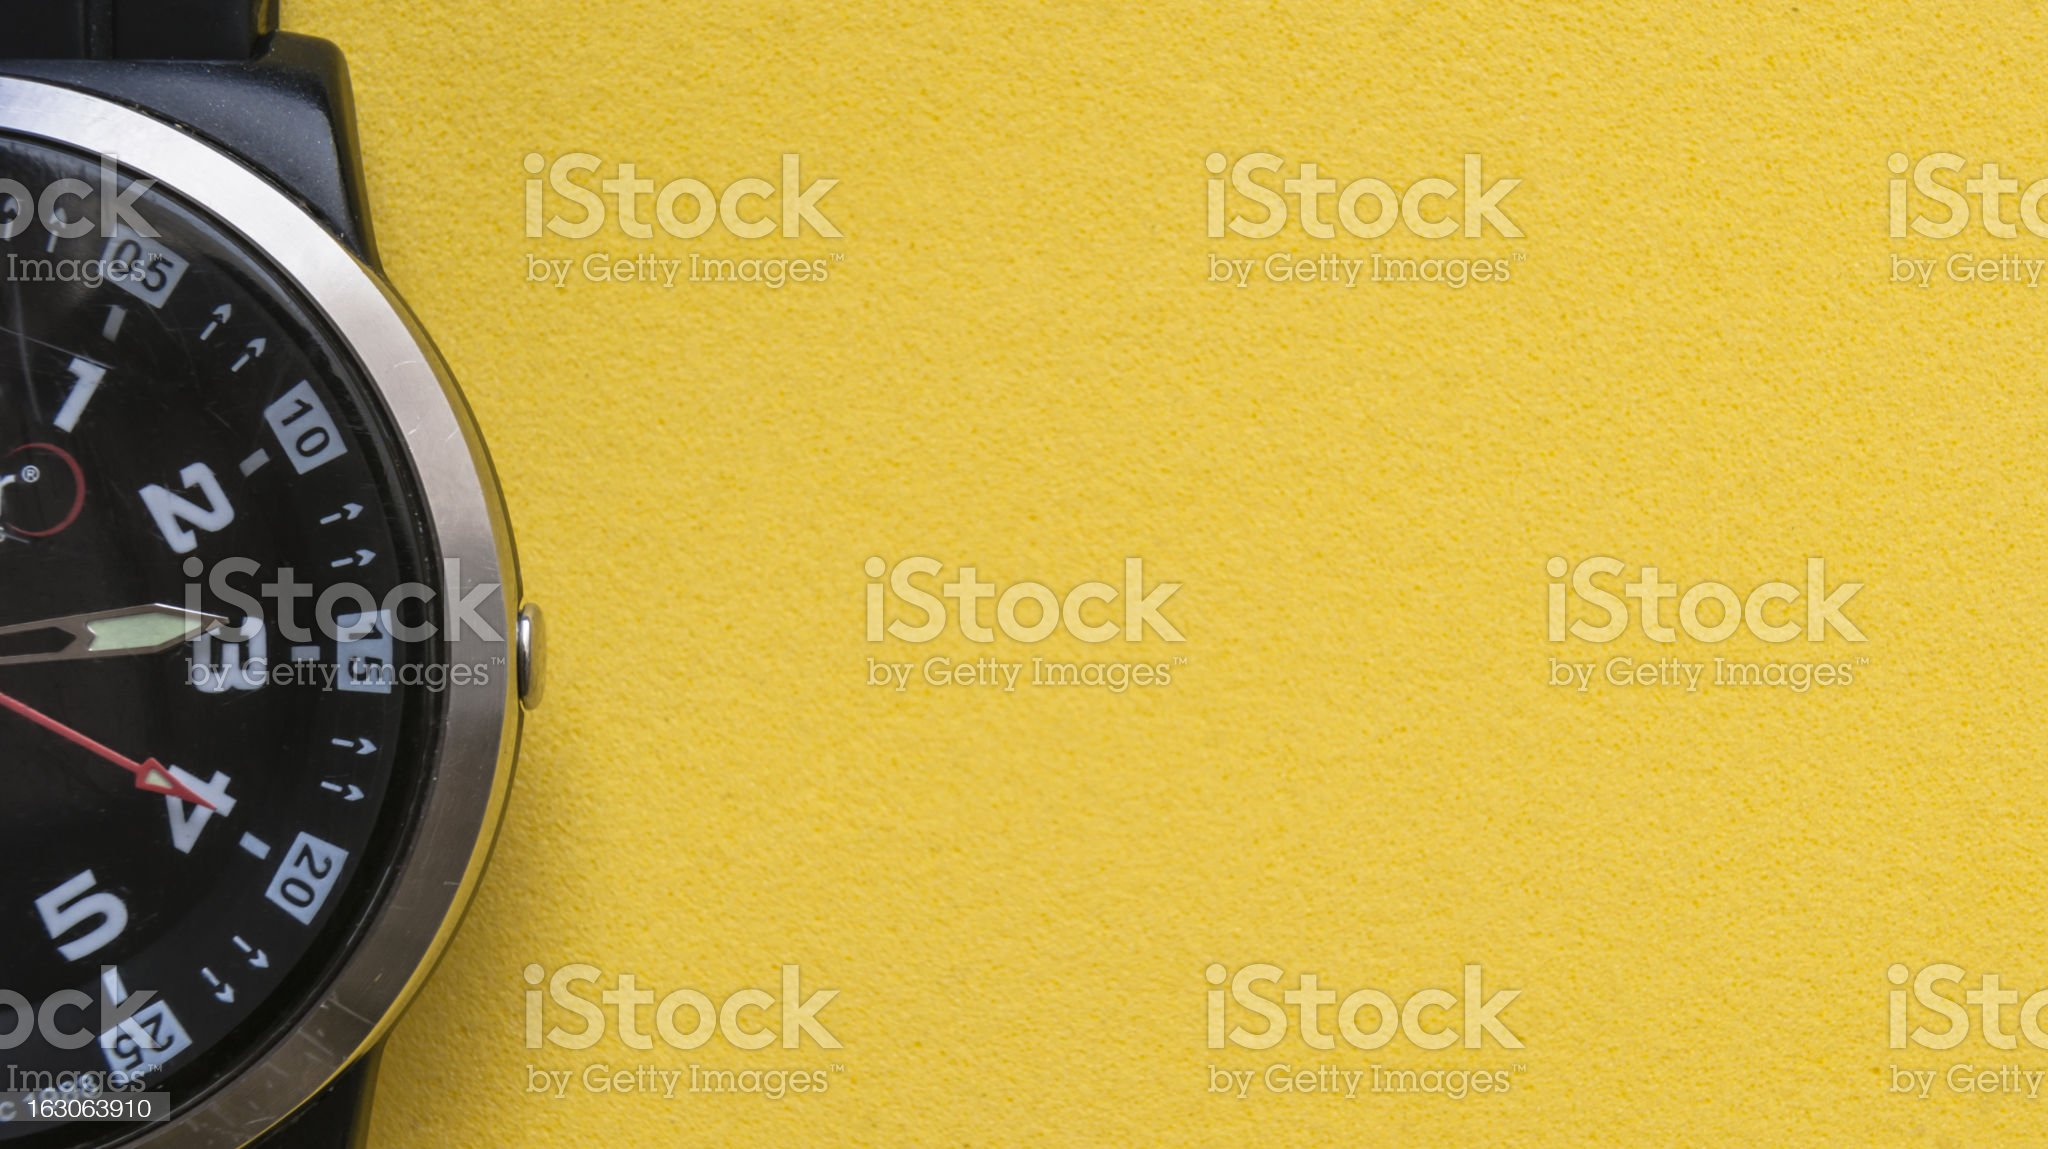 Wrist watch On a Yellow Background royalty-free stock photo